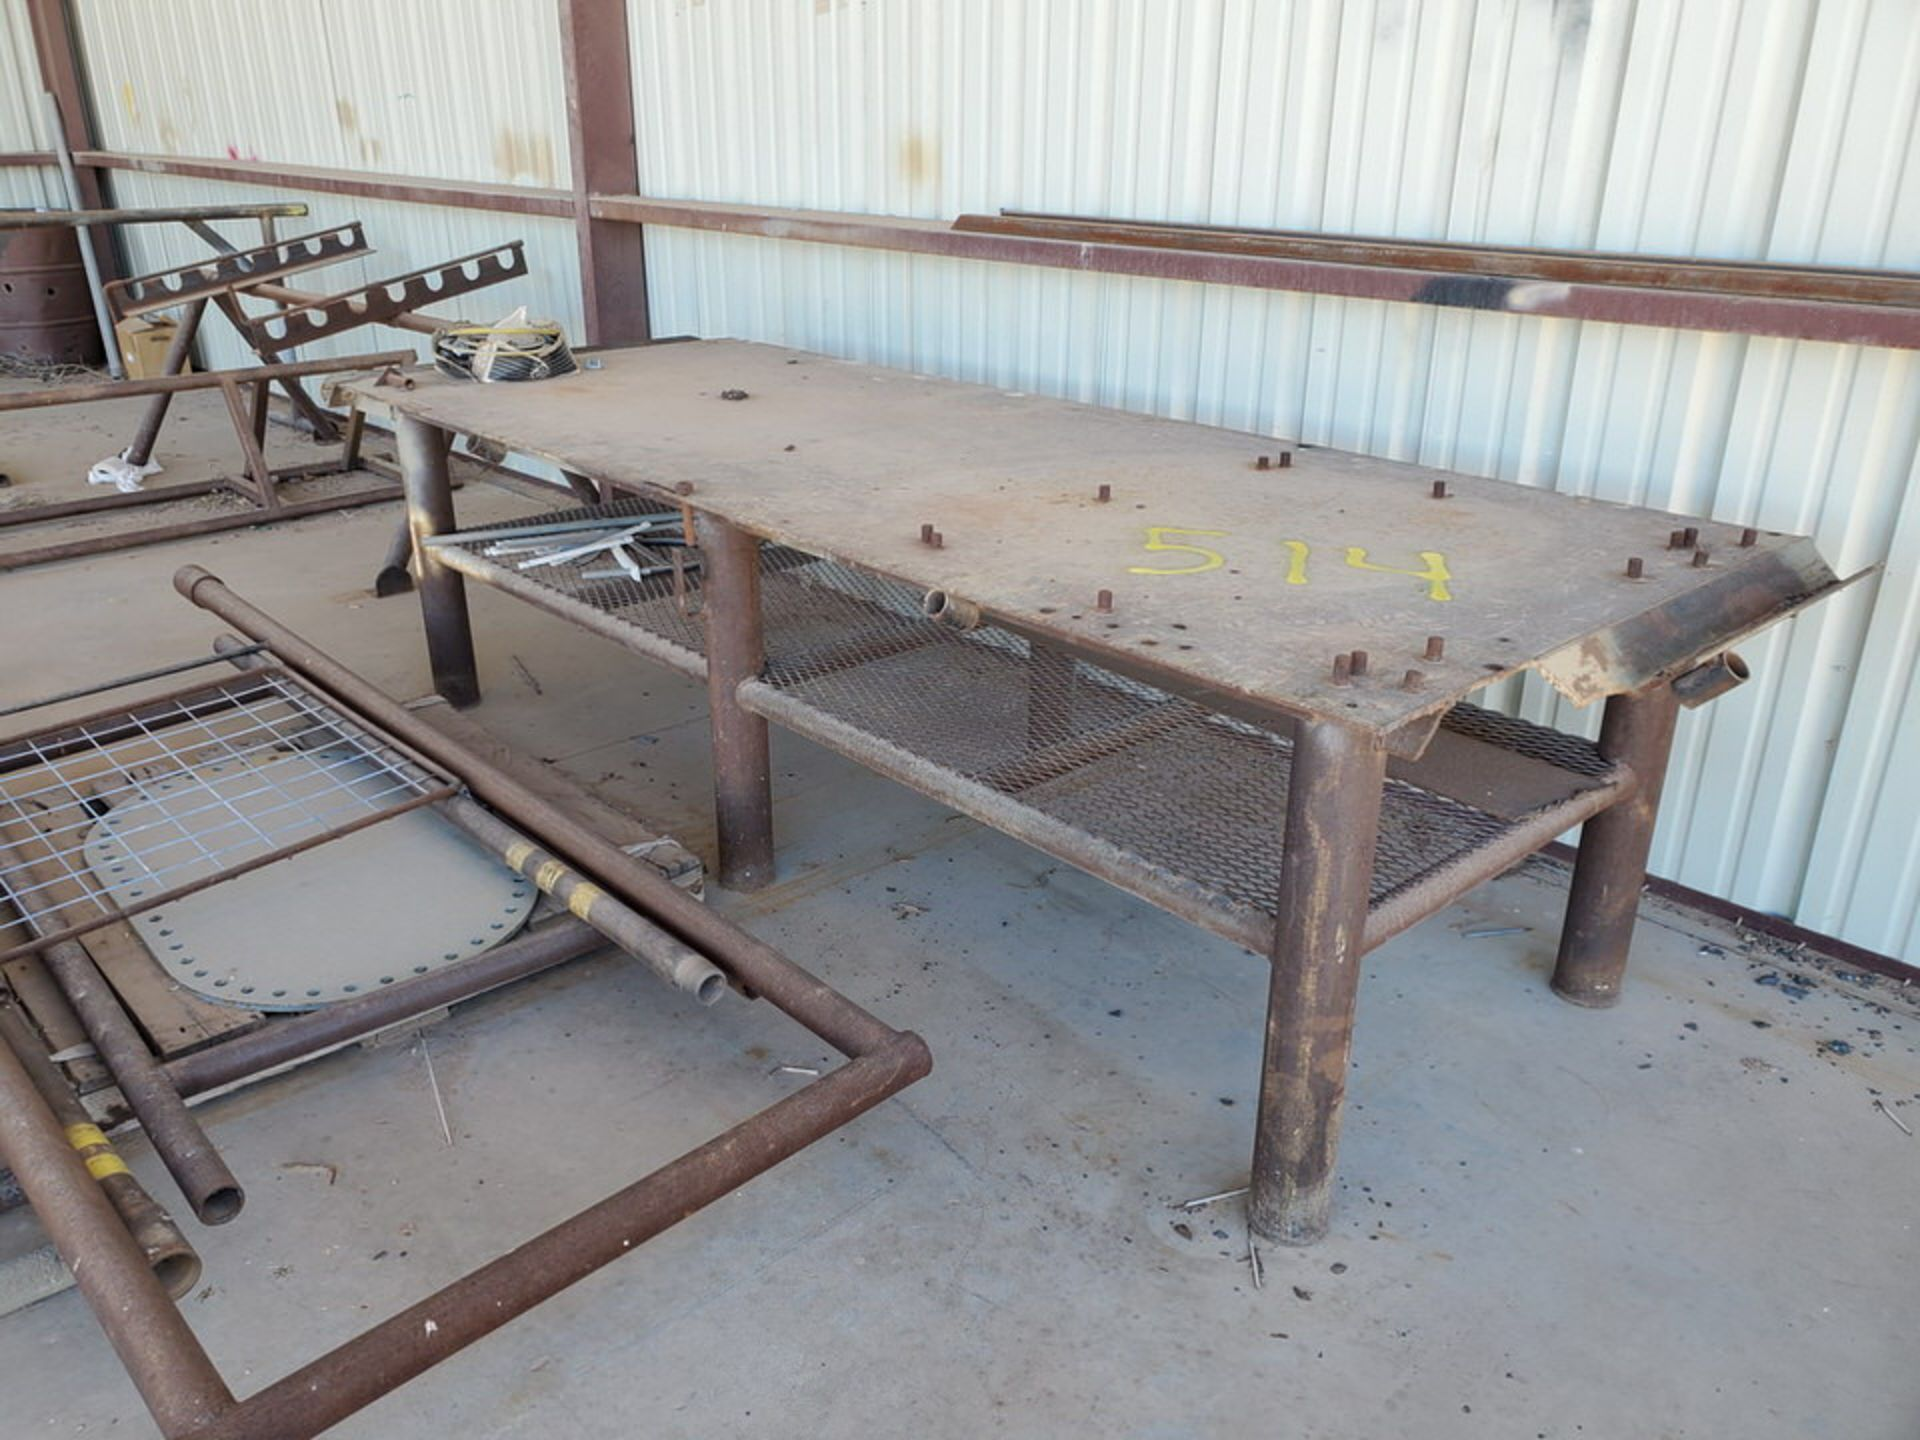 "Misc. Matl. To Include But Not Limited To: 42"" Drum Fan, Saw Horses, Welding Table, etc. - Image 2 of 10"